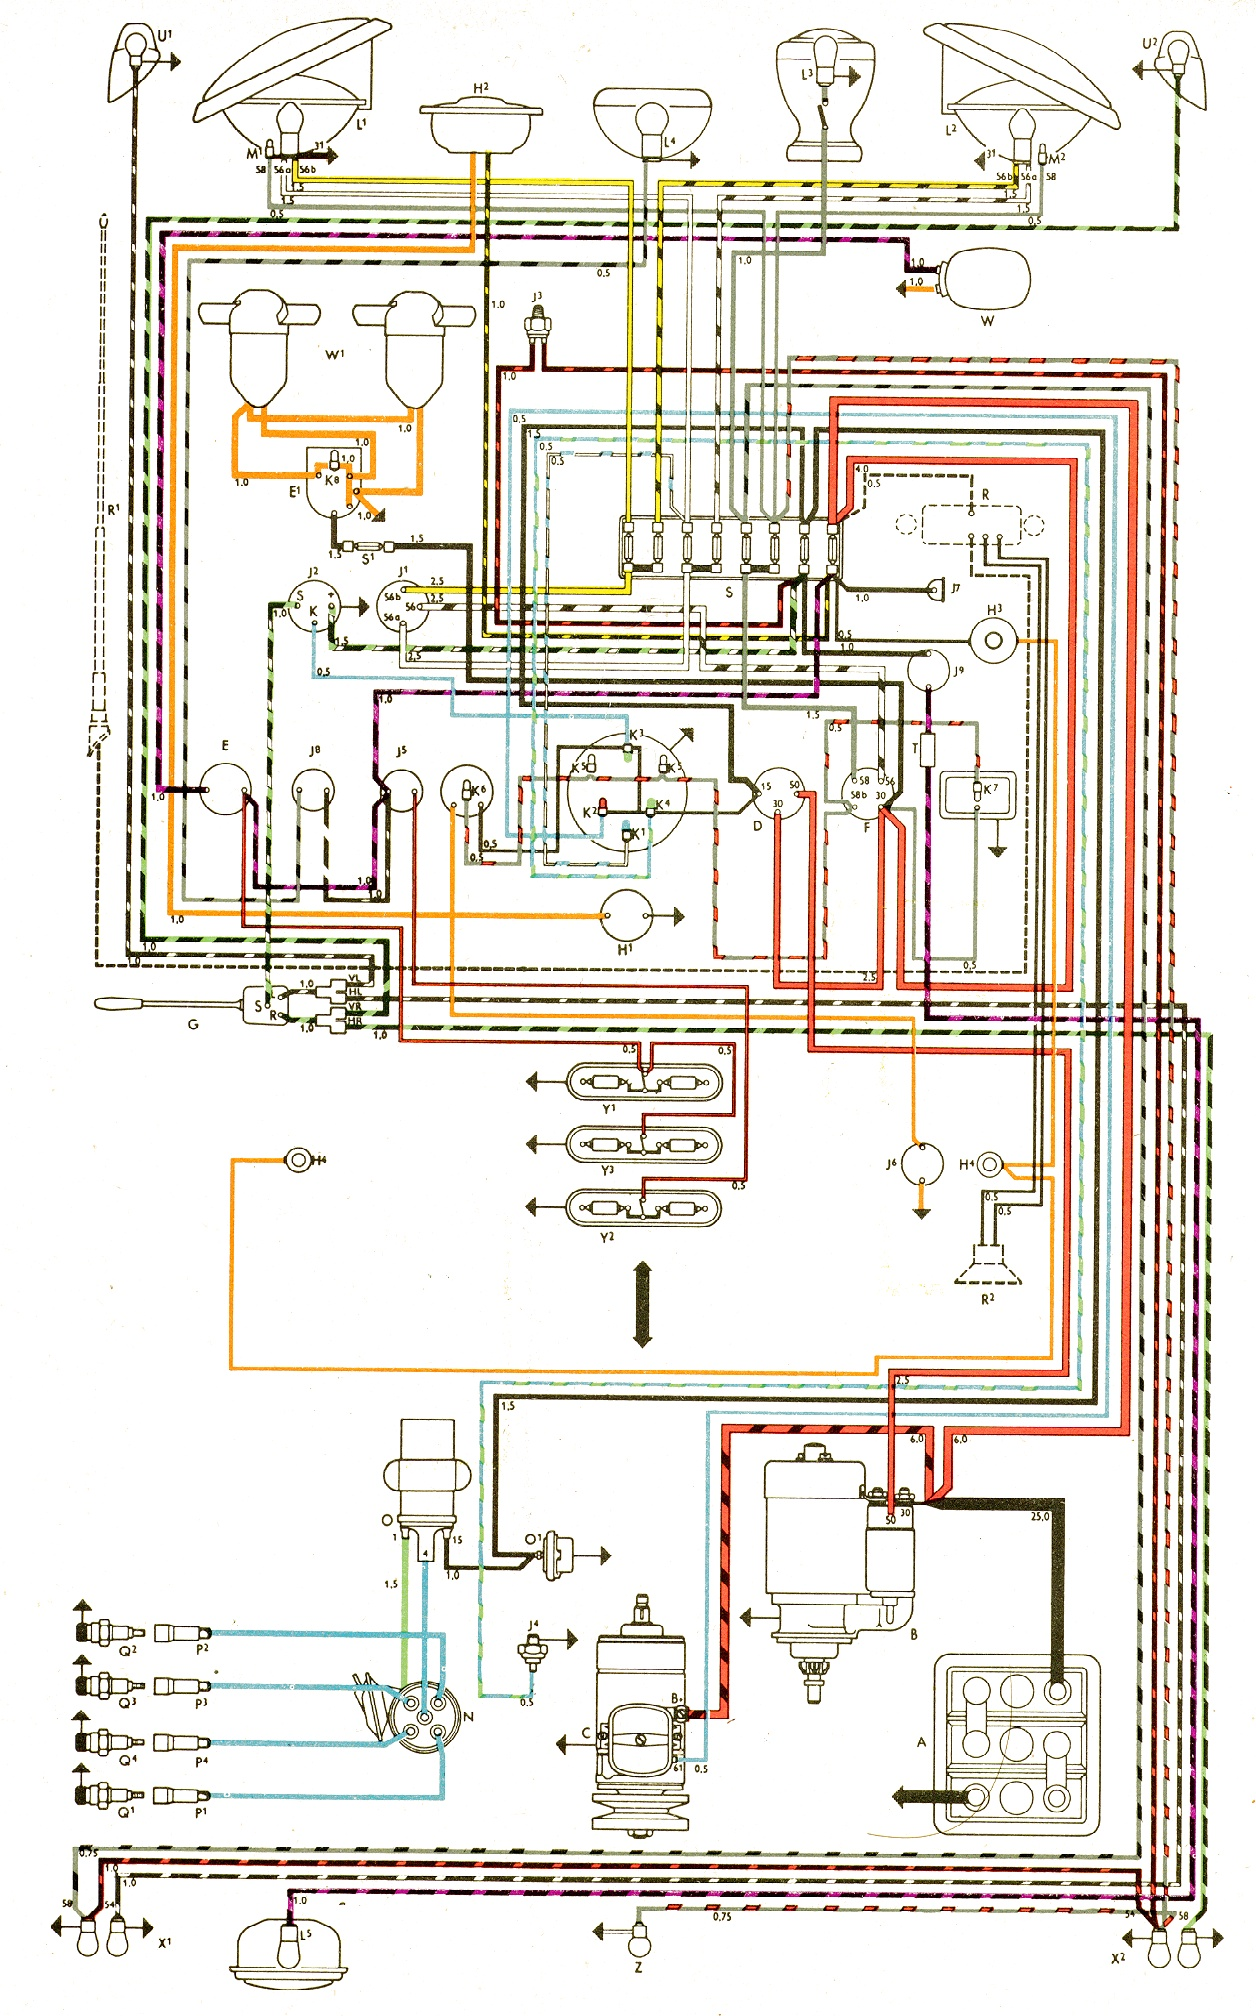 76 Vw Bus Engine Wiring Diagram Just Another Blog 1967 Vintagebus Com And Other Diagrams Rh